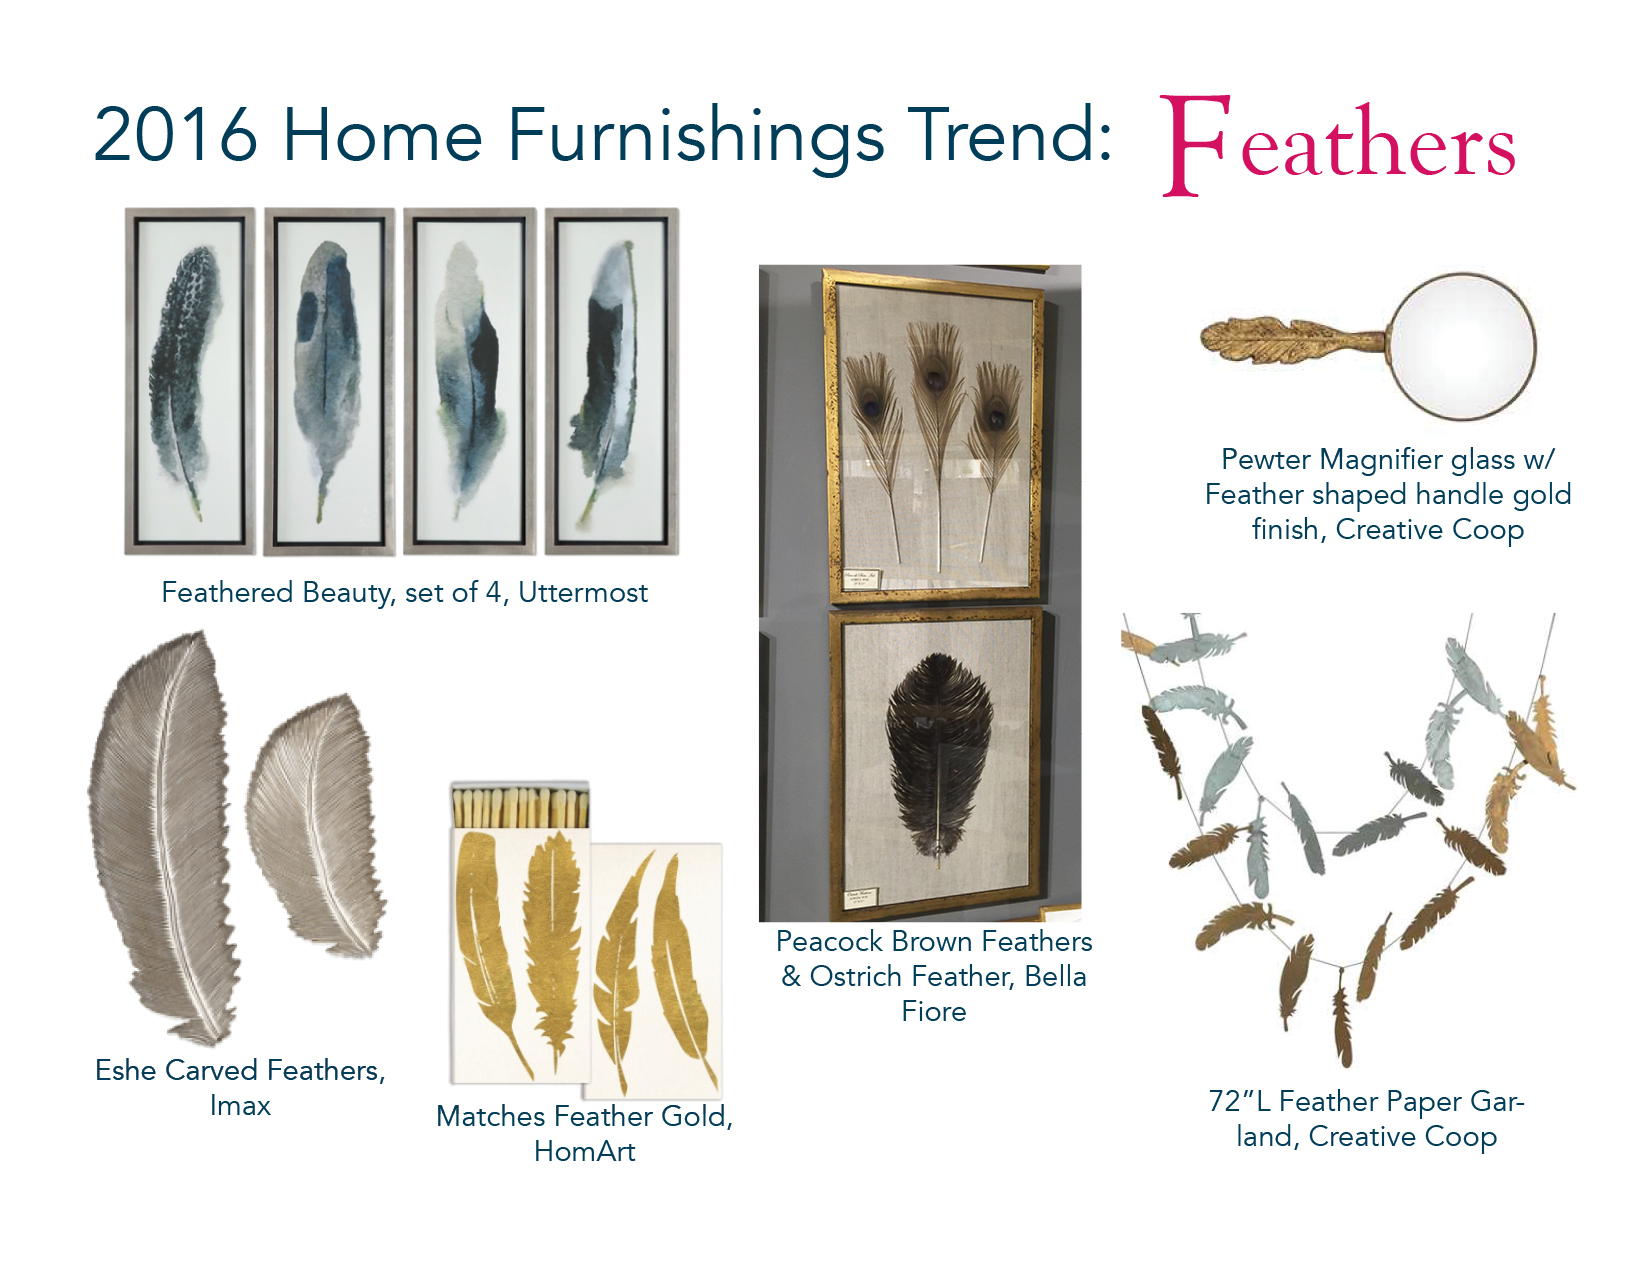 Christy Davis Interiors: January 2016 home furnishings Trends: Feathers